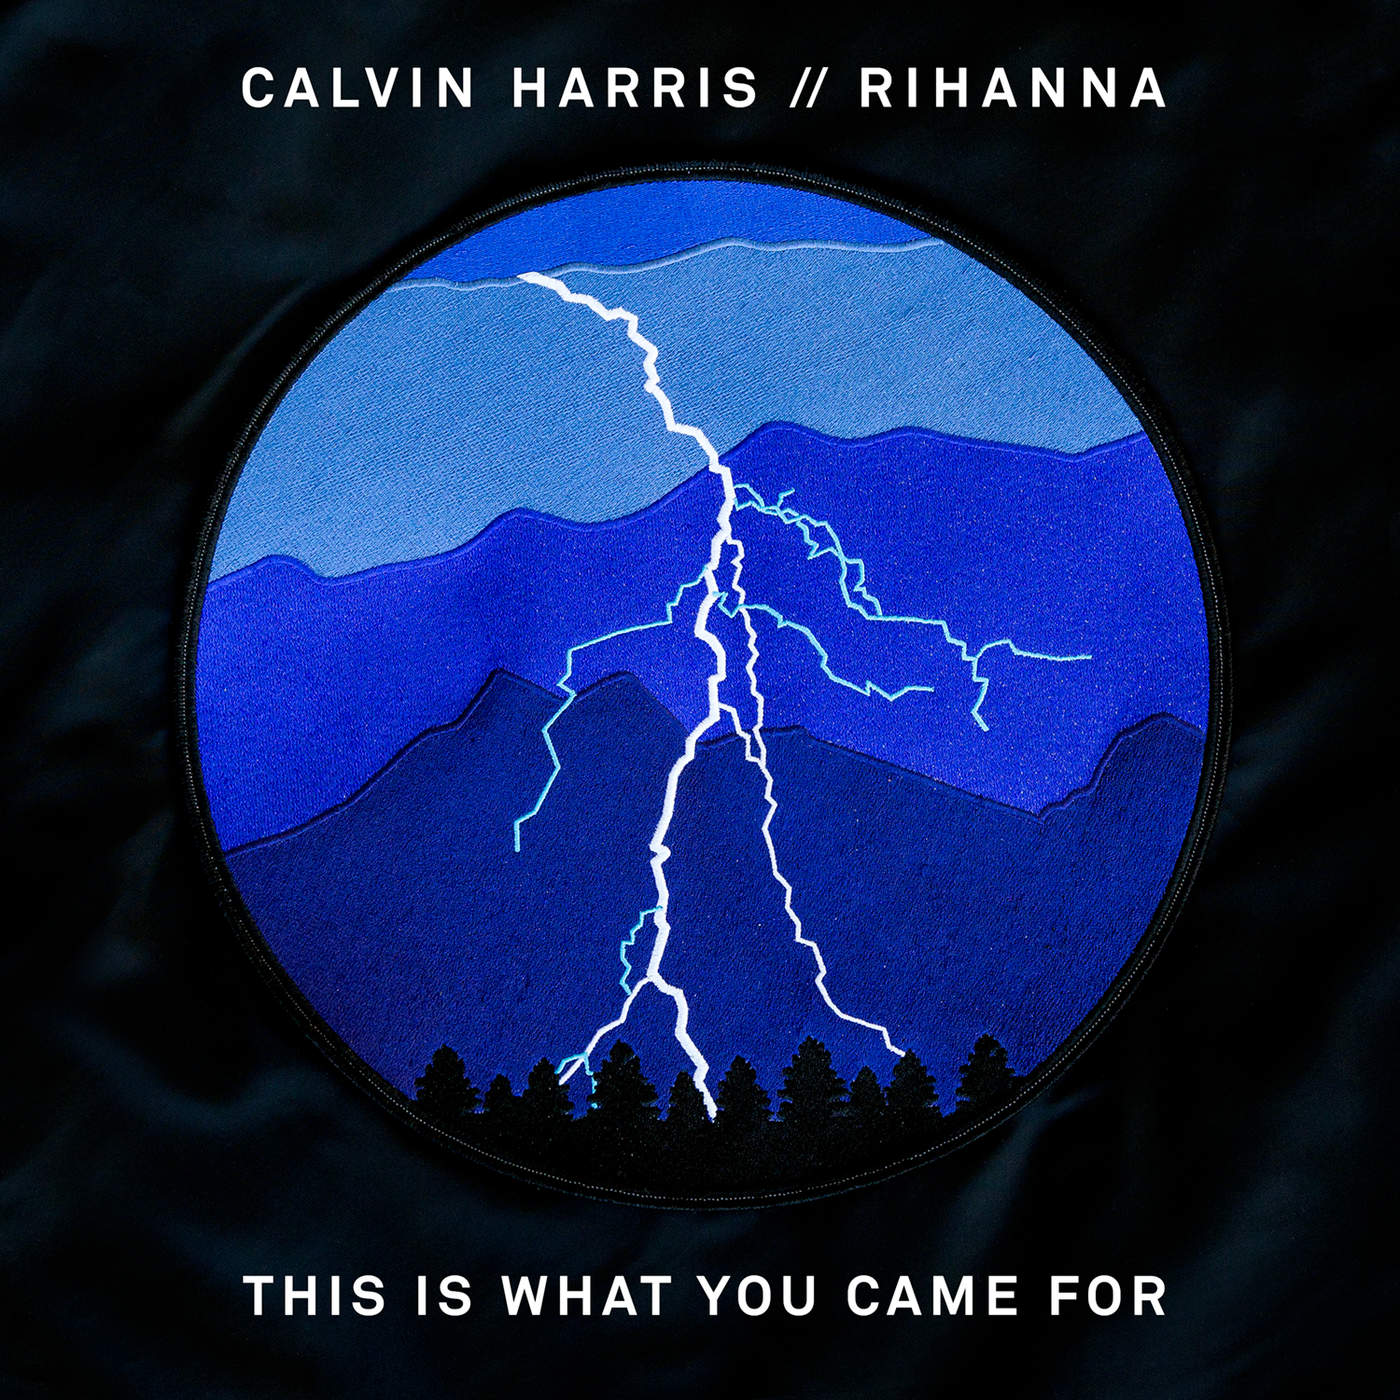 Art for This Is What You Came For (feat. Rihanna) by Calvin Harris